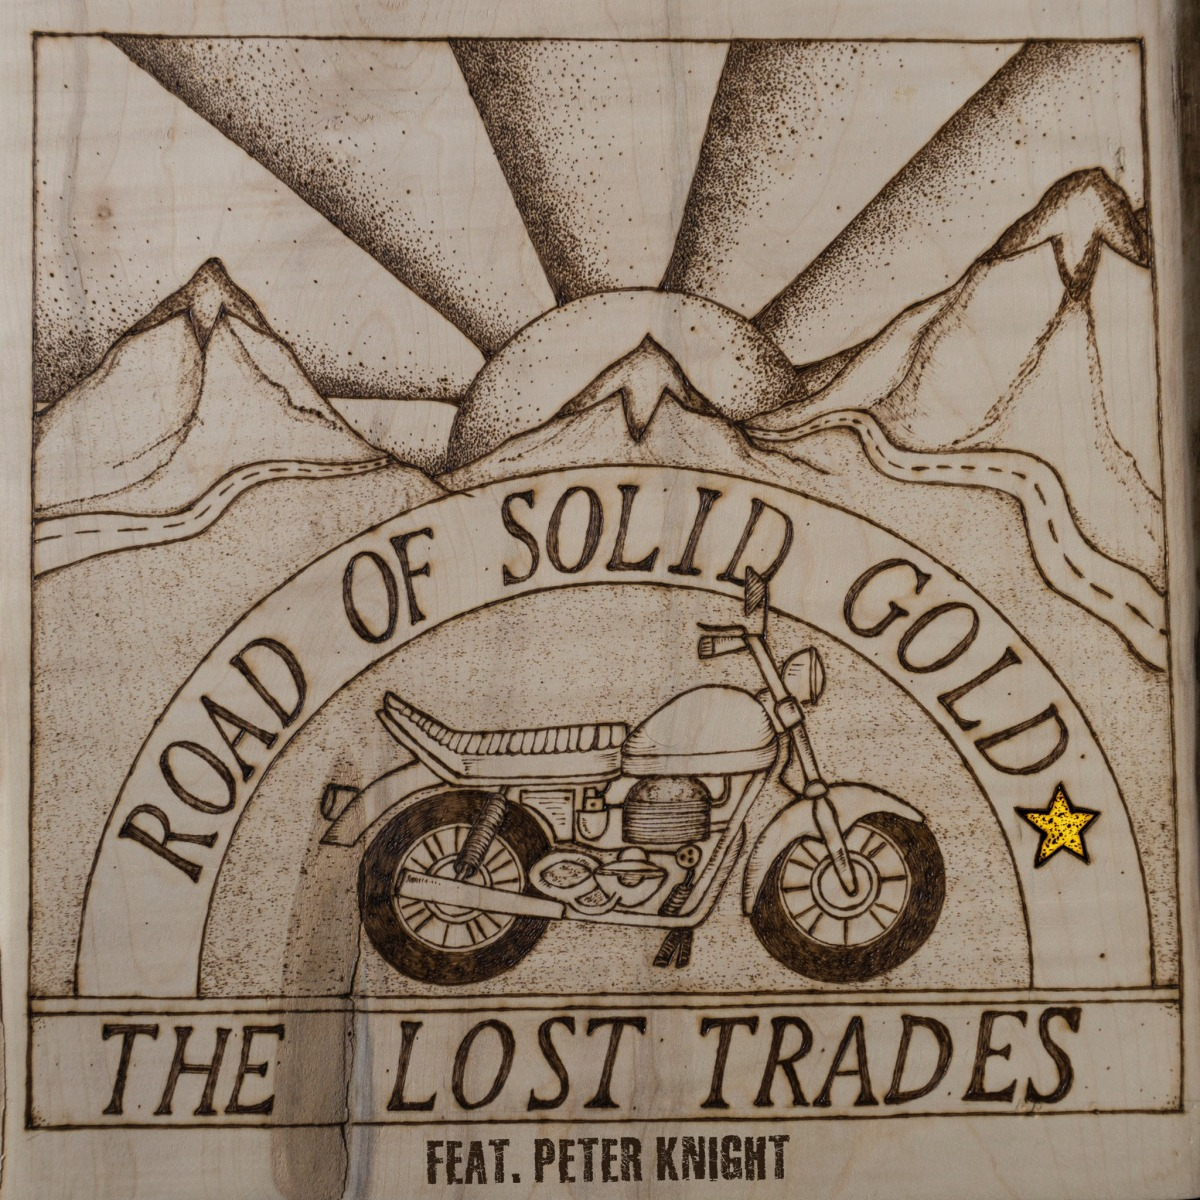 Looking Forward to the Trades' Road of Solid Gold